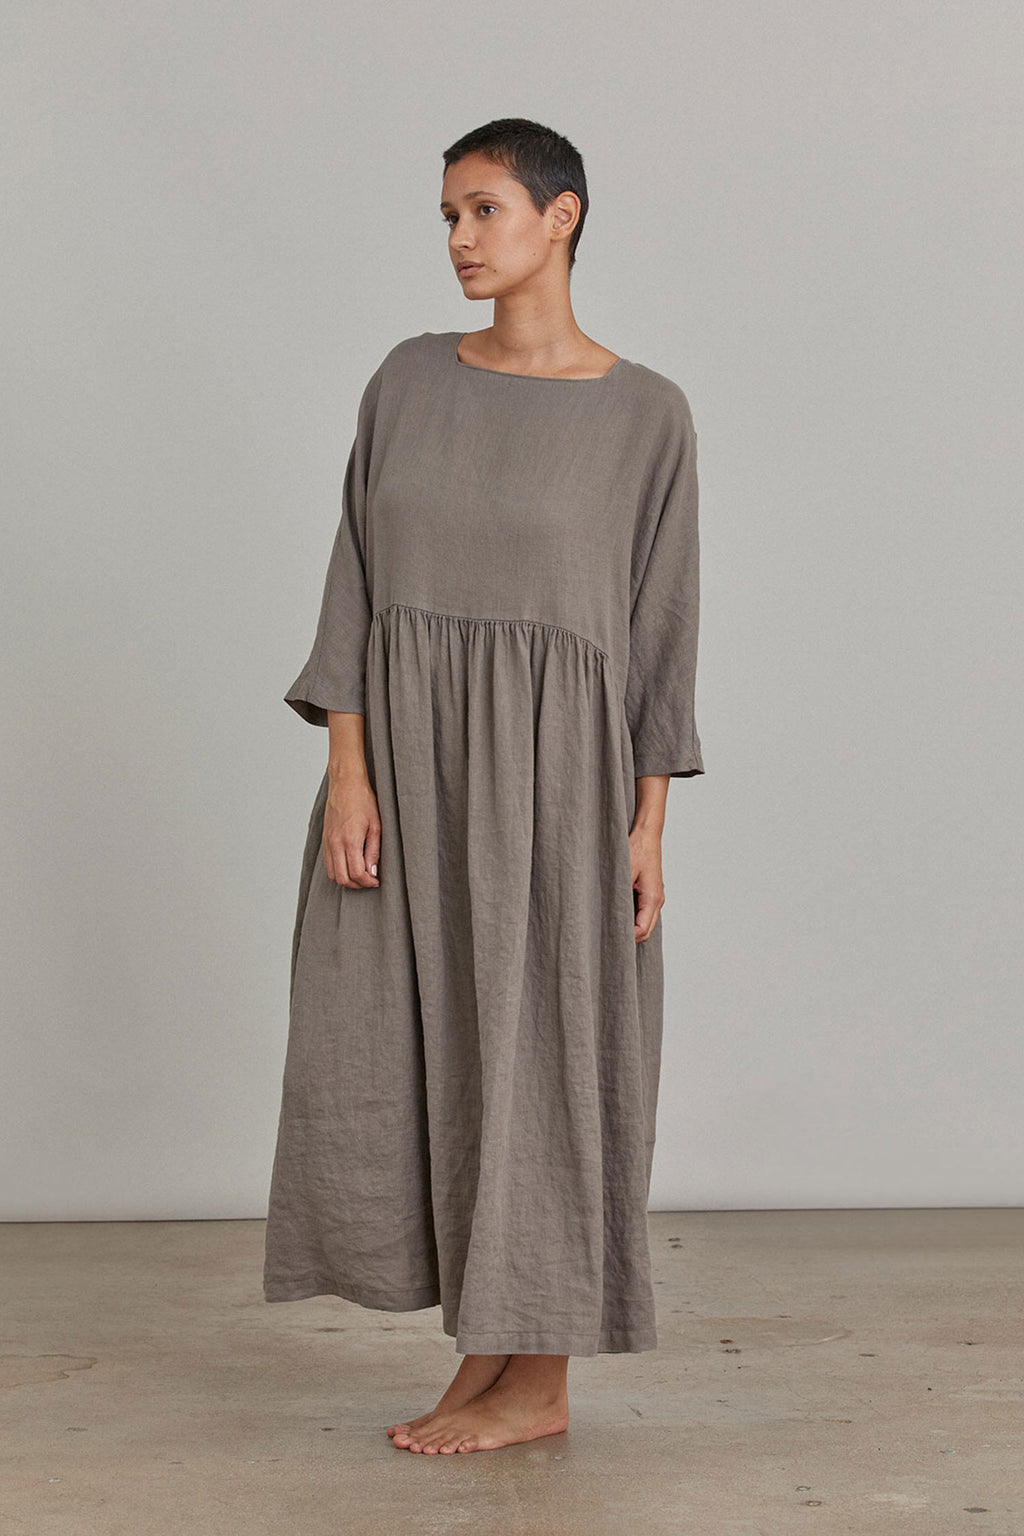 TRADI DRESS / L-TRD01 / GRAY